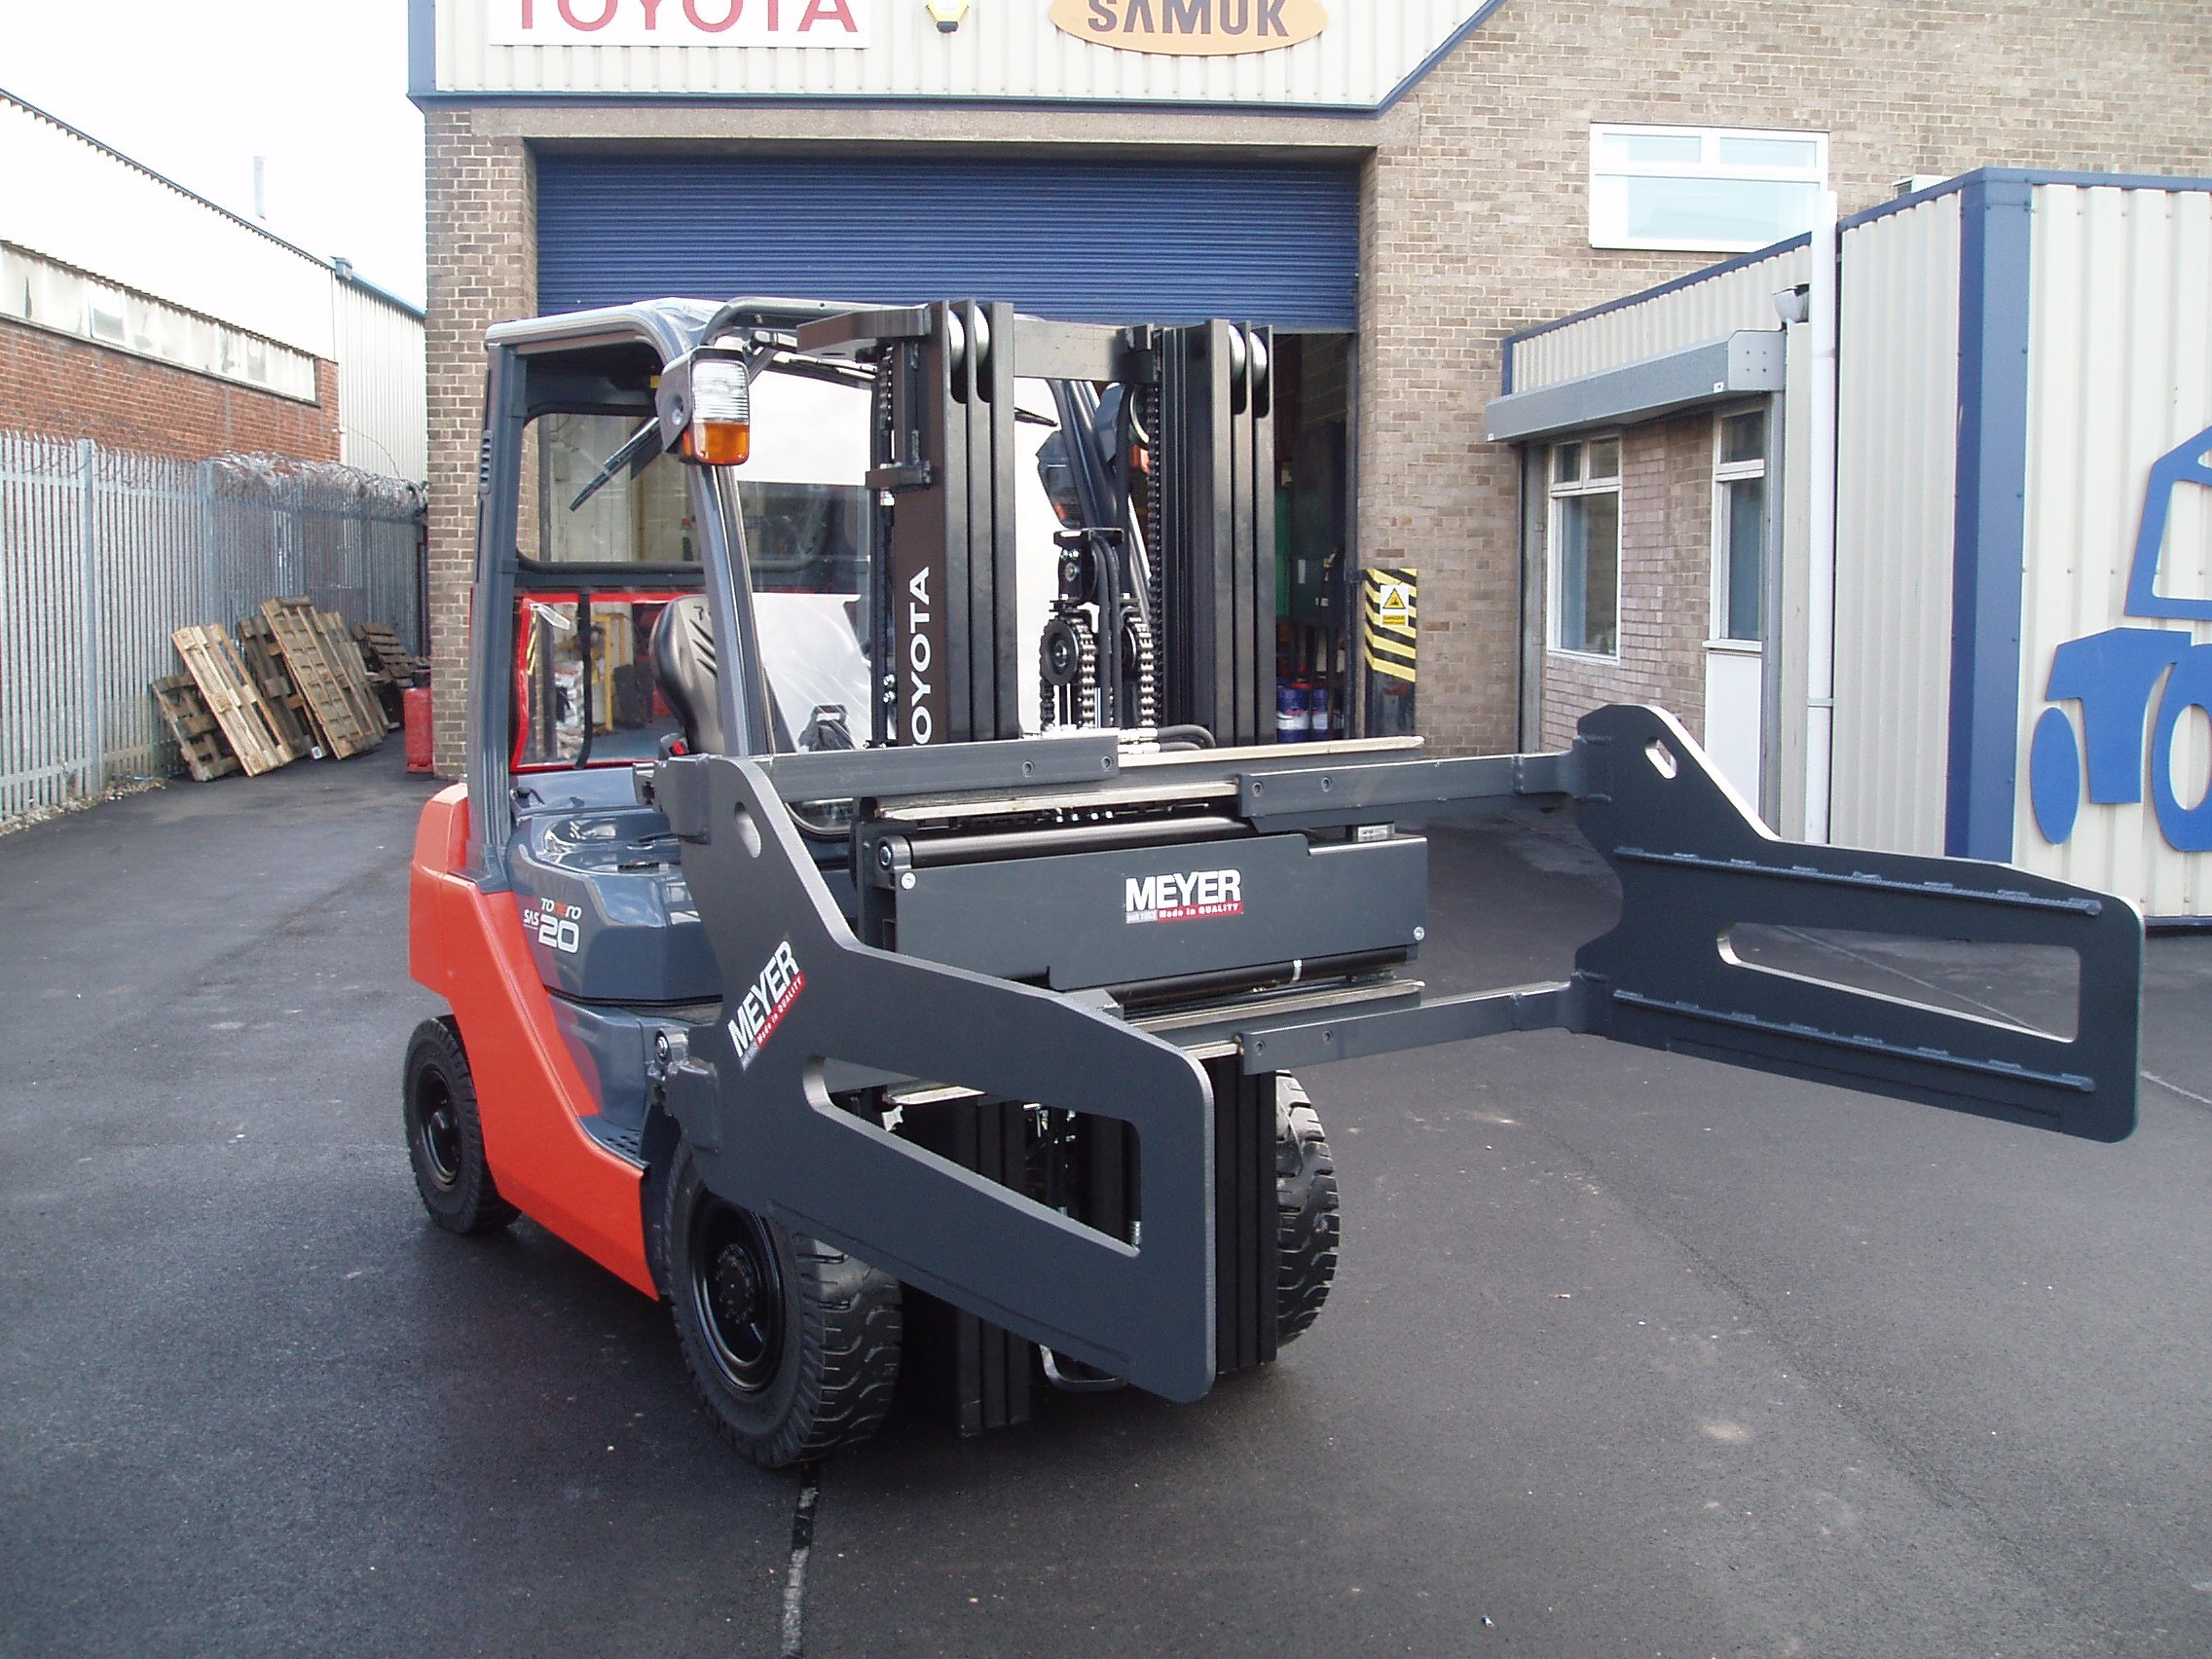 forklift being operated